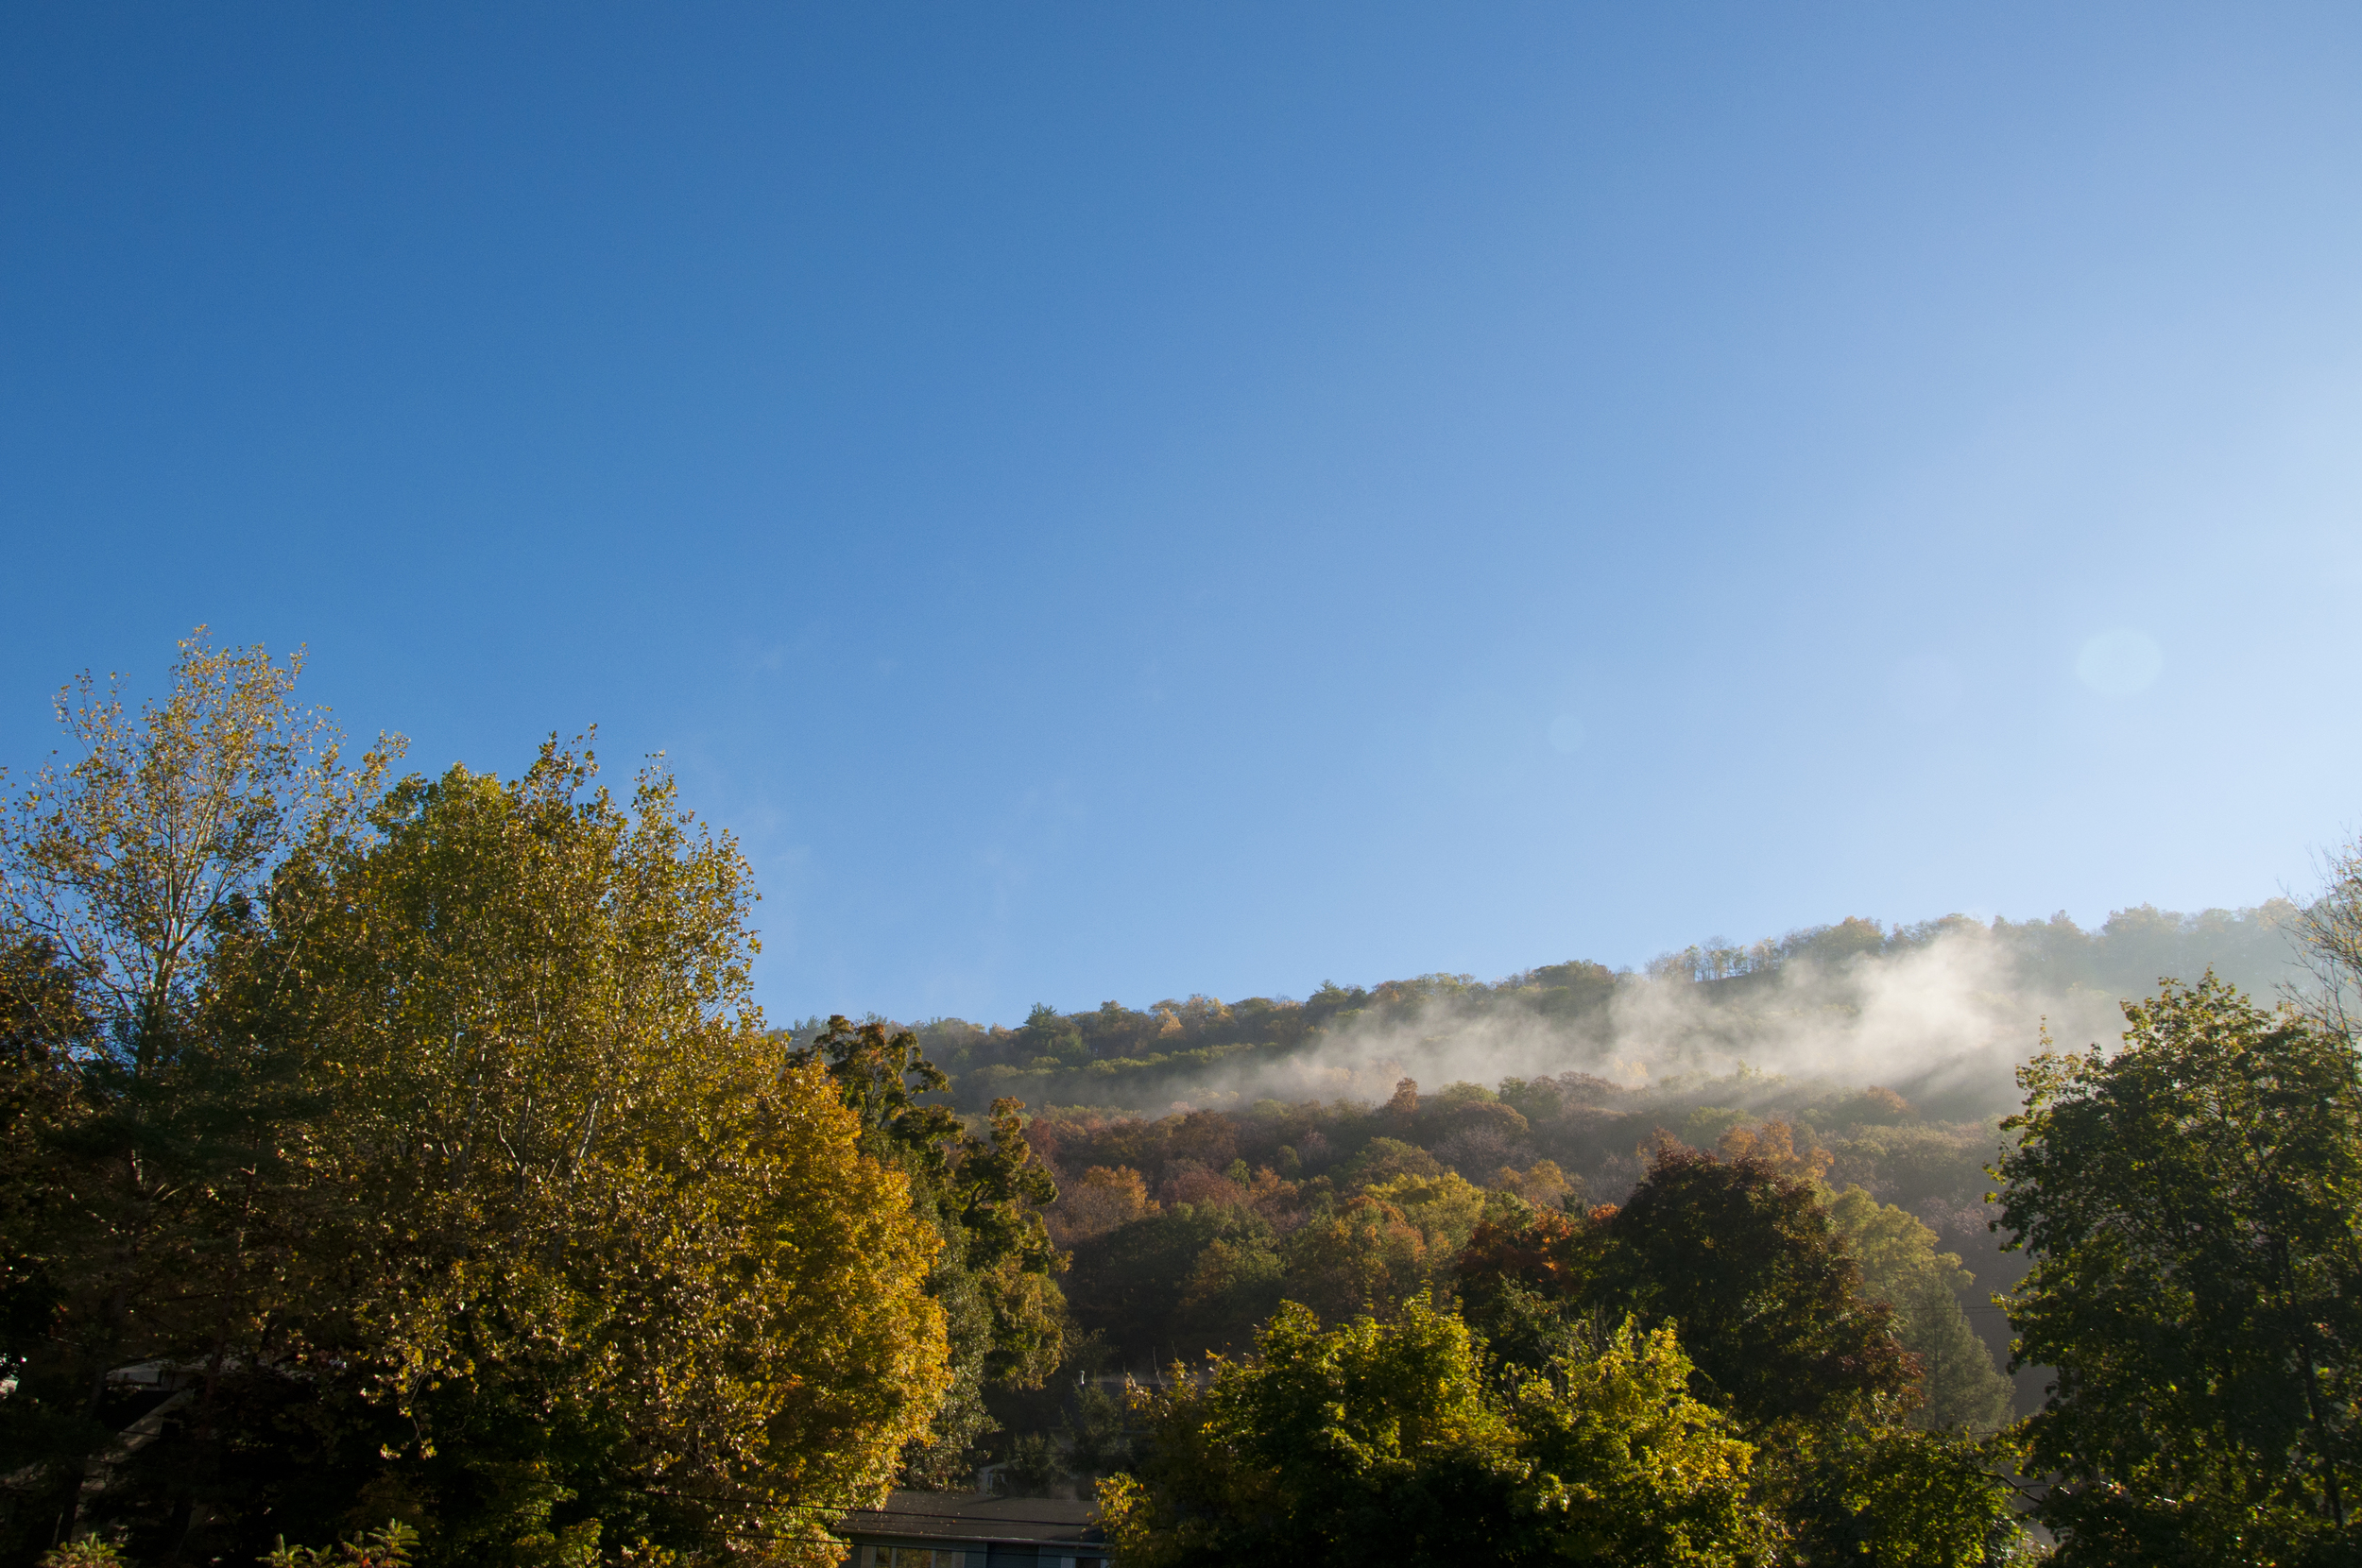 While driving to the outlets that A.M., I snapped this shot of the forest fog spotted along the highway - pure * m a g i c *